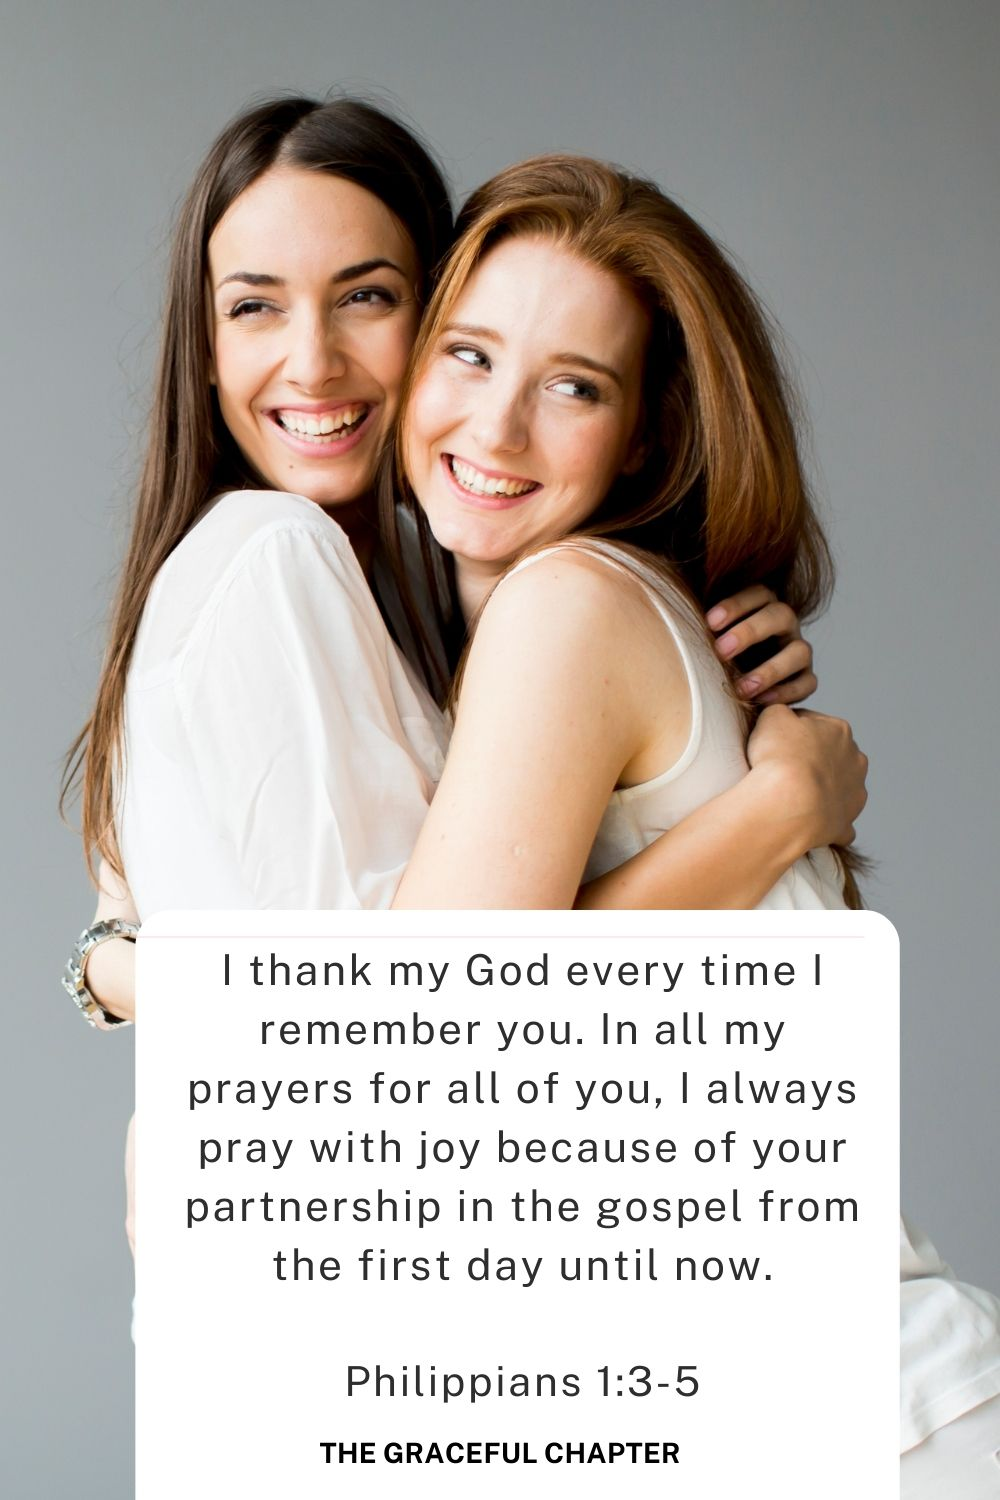 I thank my God every time I remember you. In all my prayers for all of you, I always pray with joy because of your partnership in the gospel from the first day until now. Philippians 1:3-5